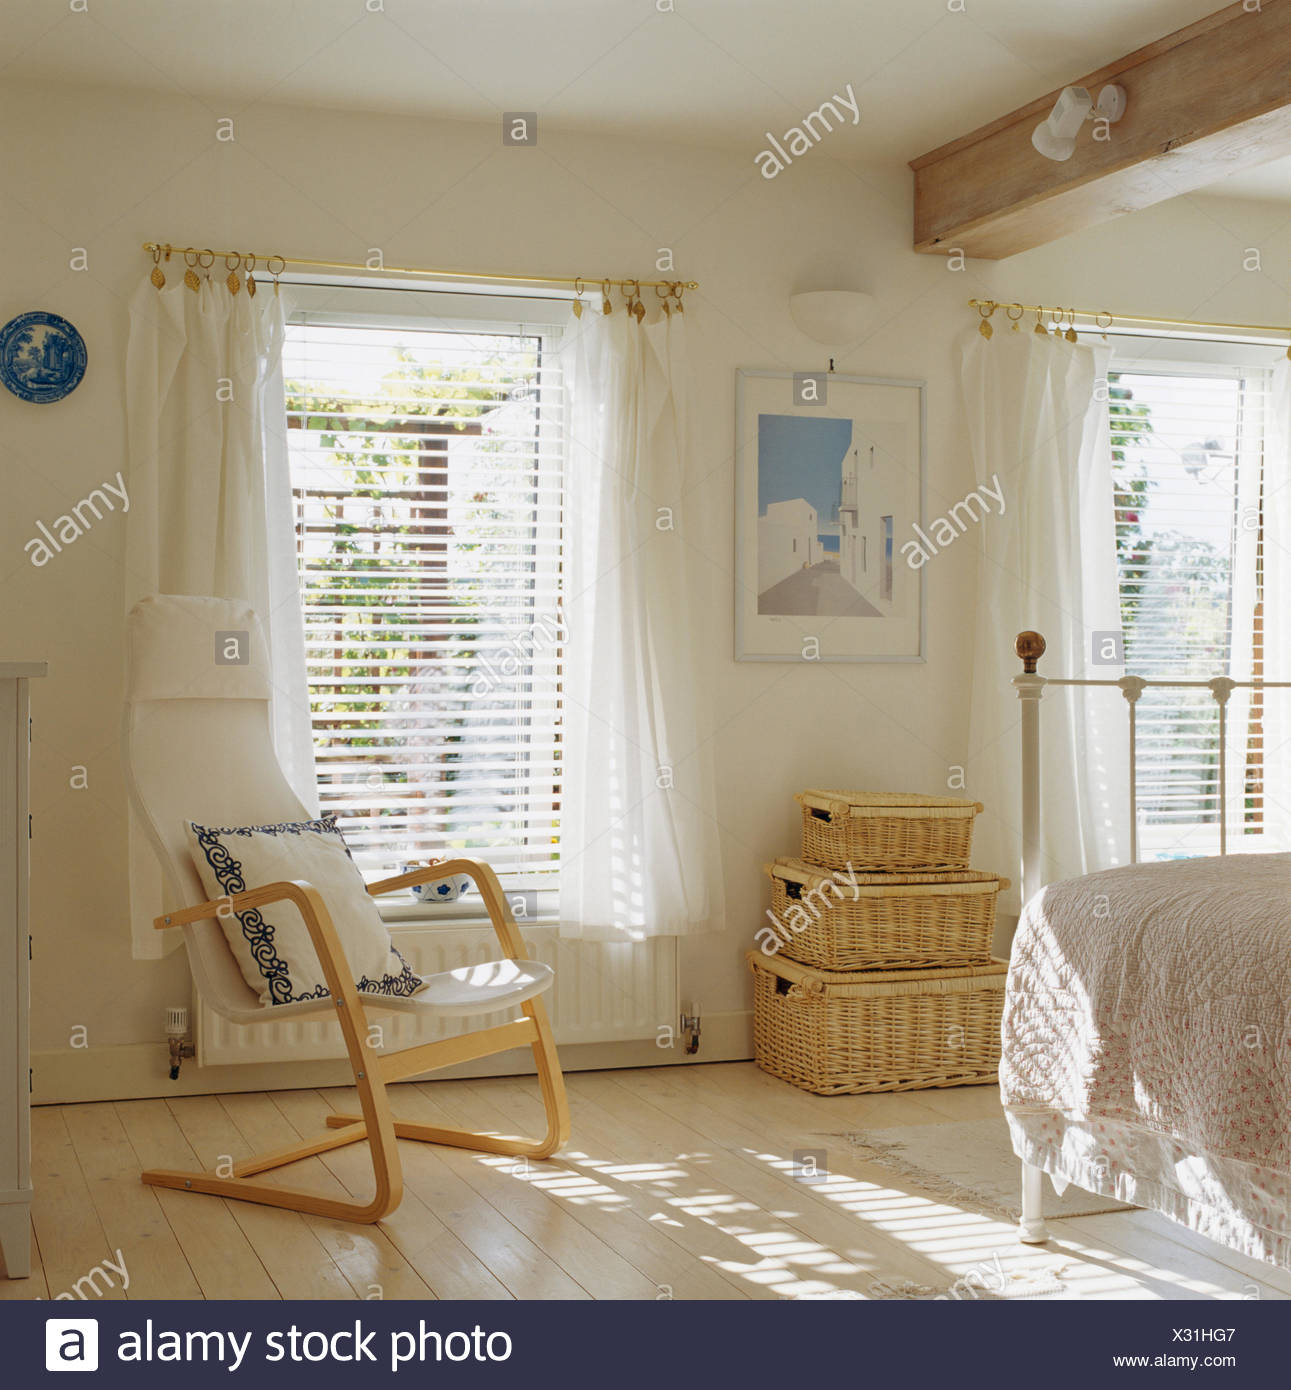 Scandinavian Style Wooden Chair And Wicker Chests In White Bedroom With  Venetian Blinds And White Voile Curtains On Window